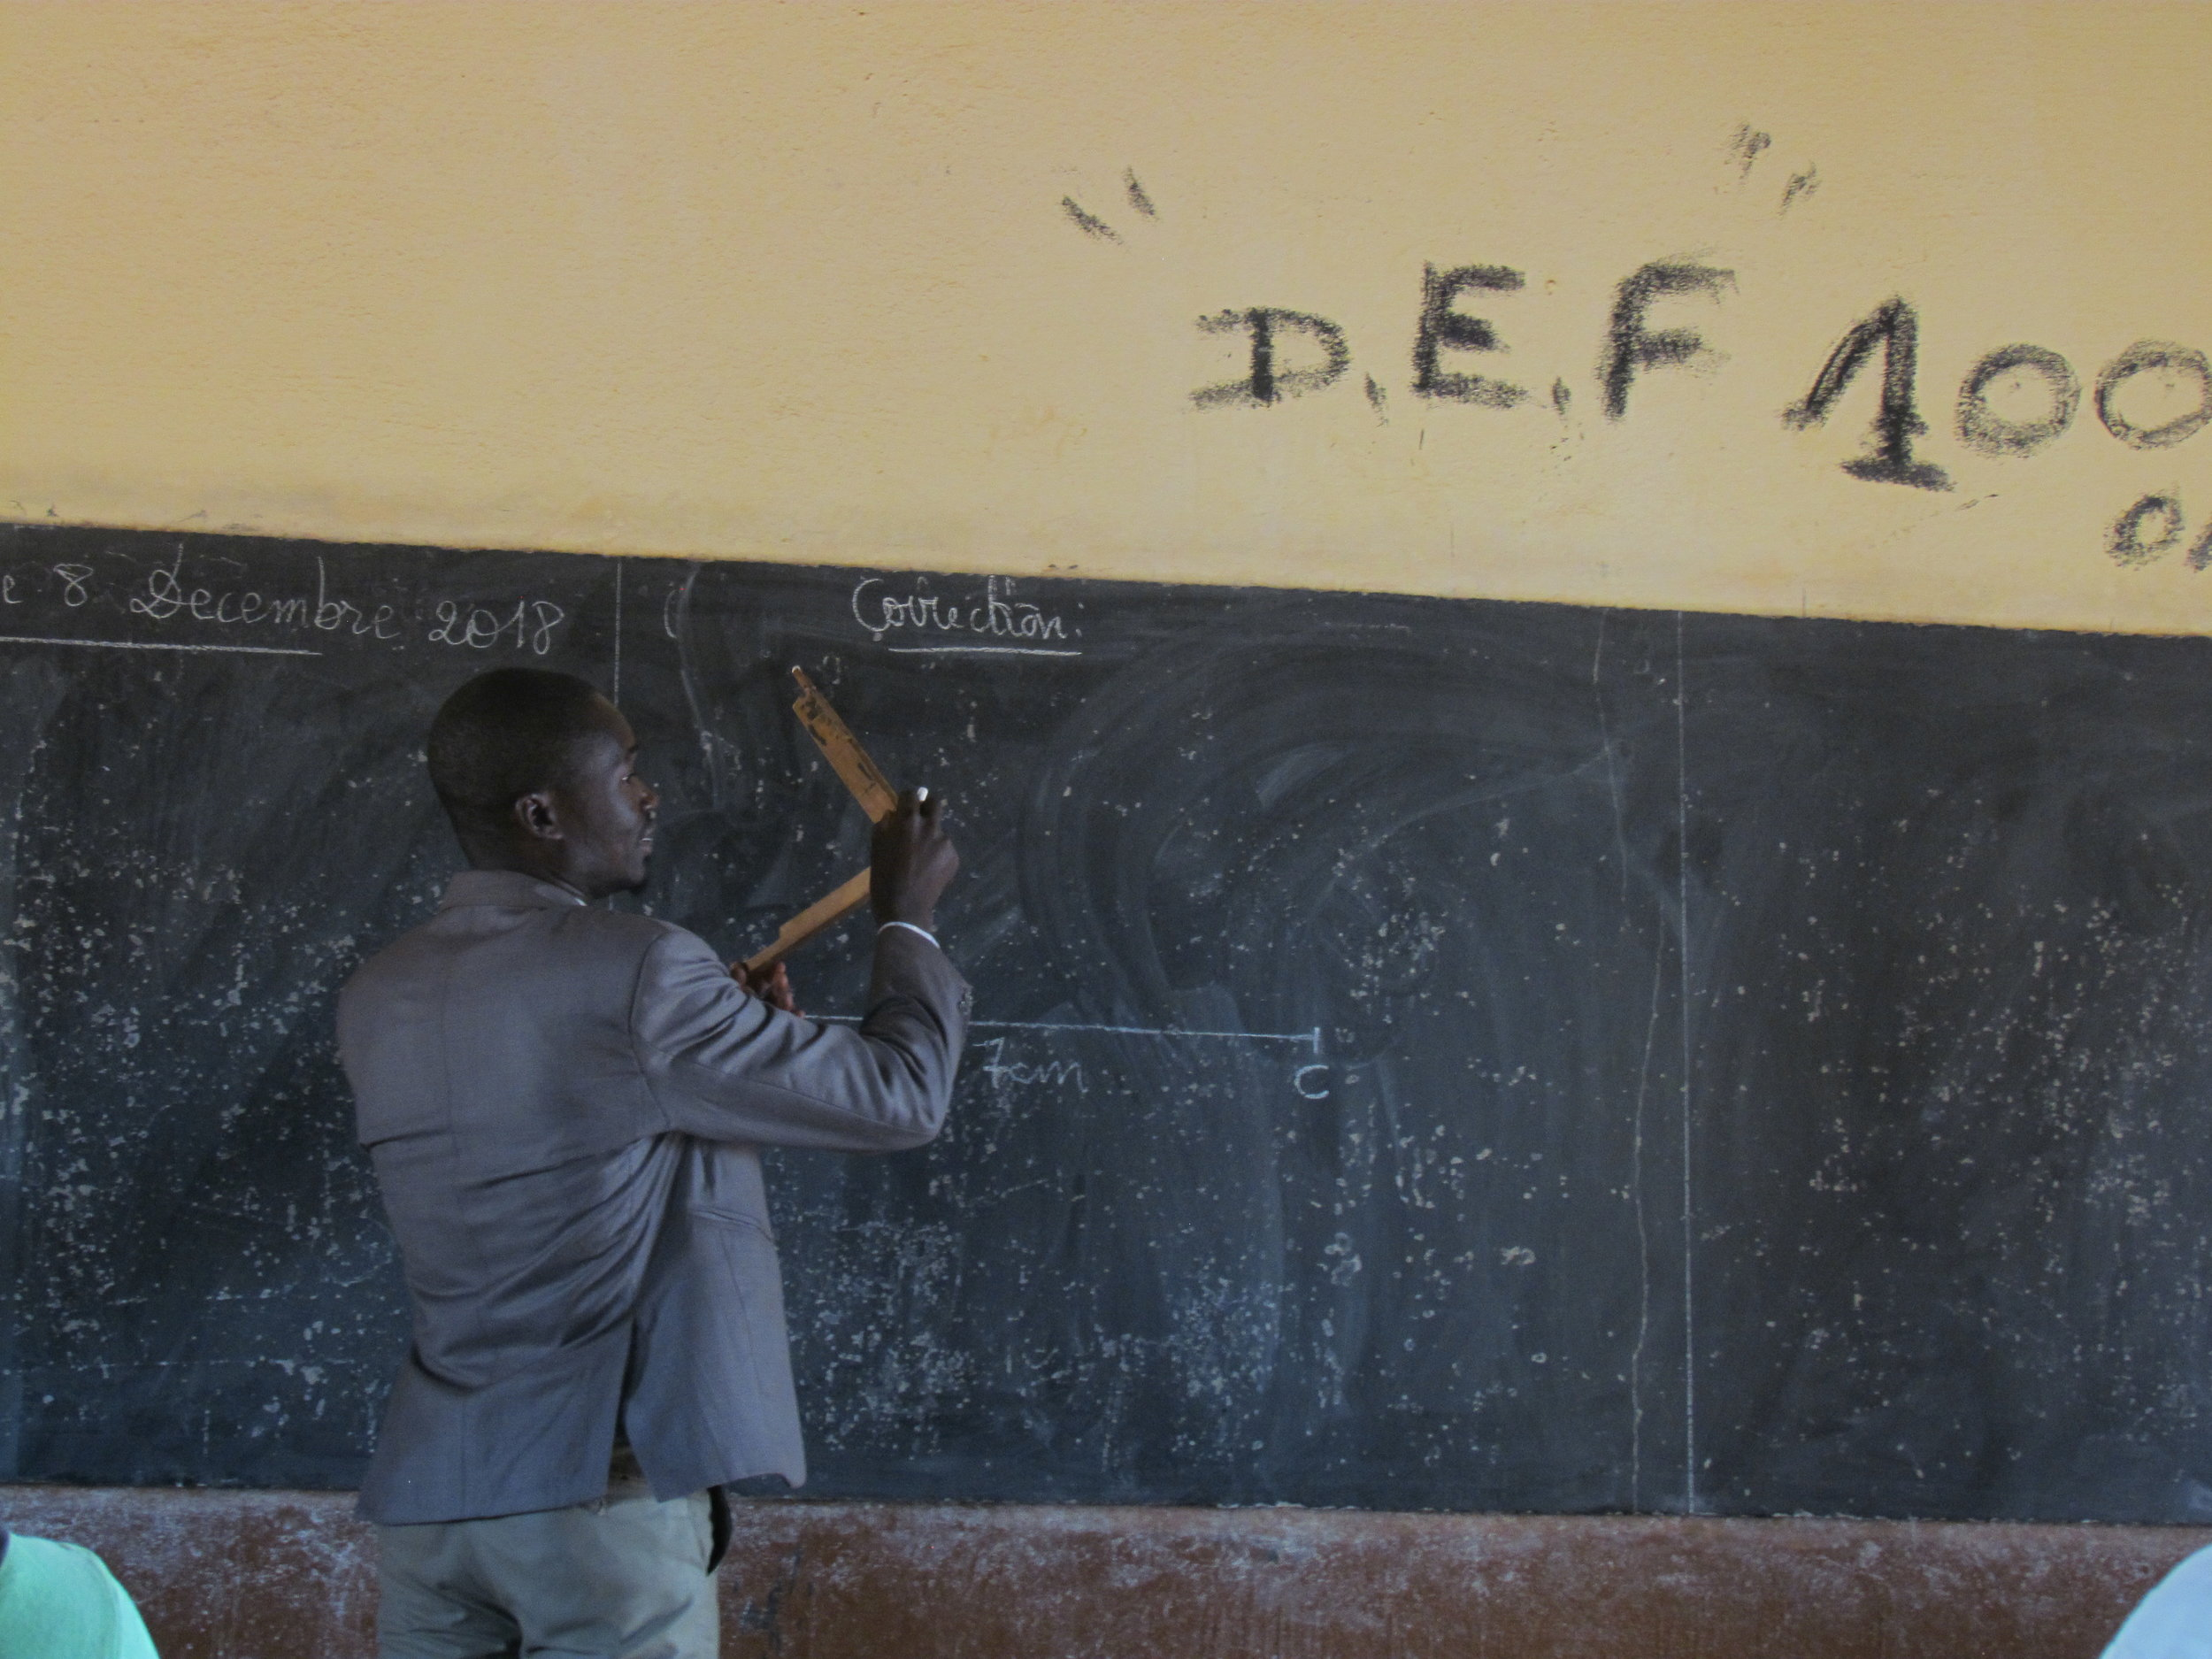 A physics teacher from the middle school of Zambougou giving a physics lesson.